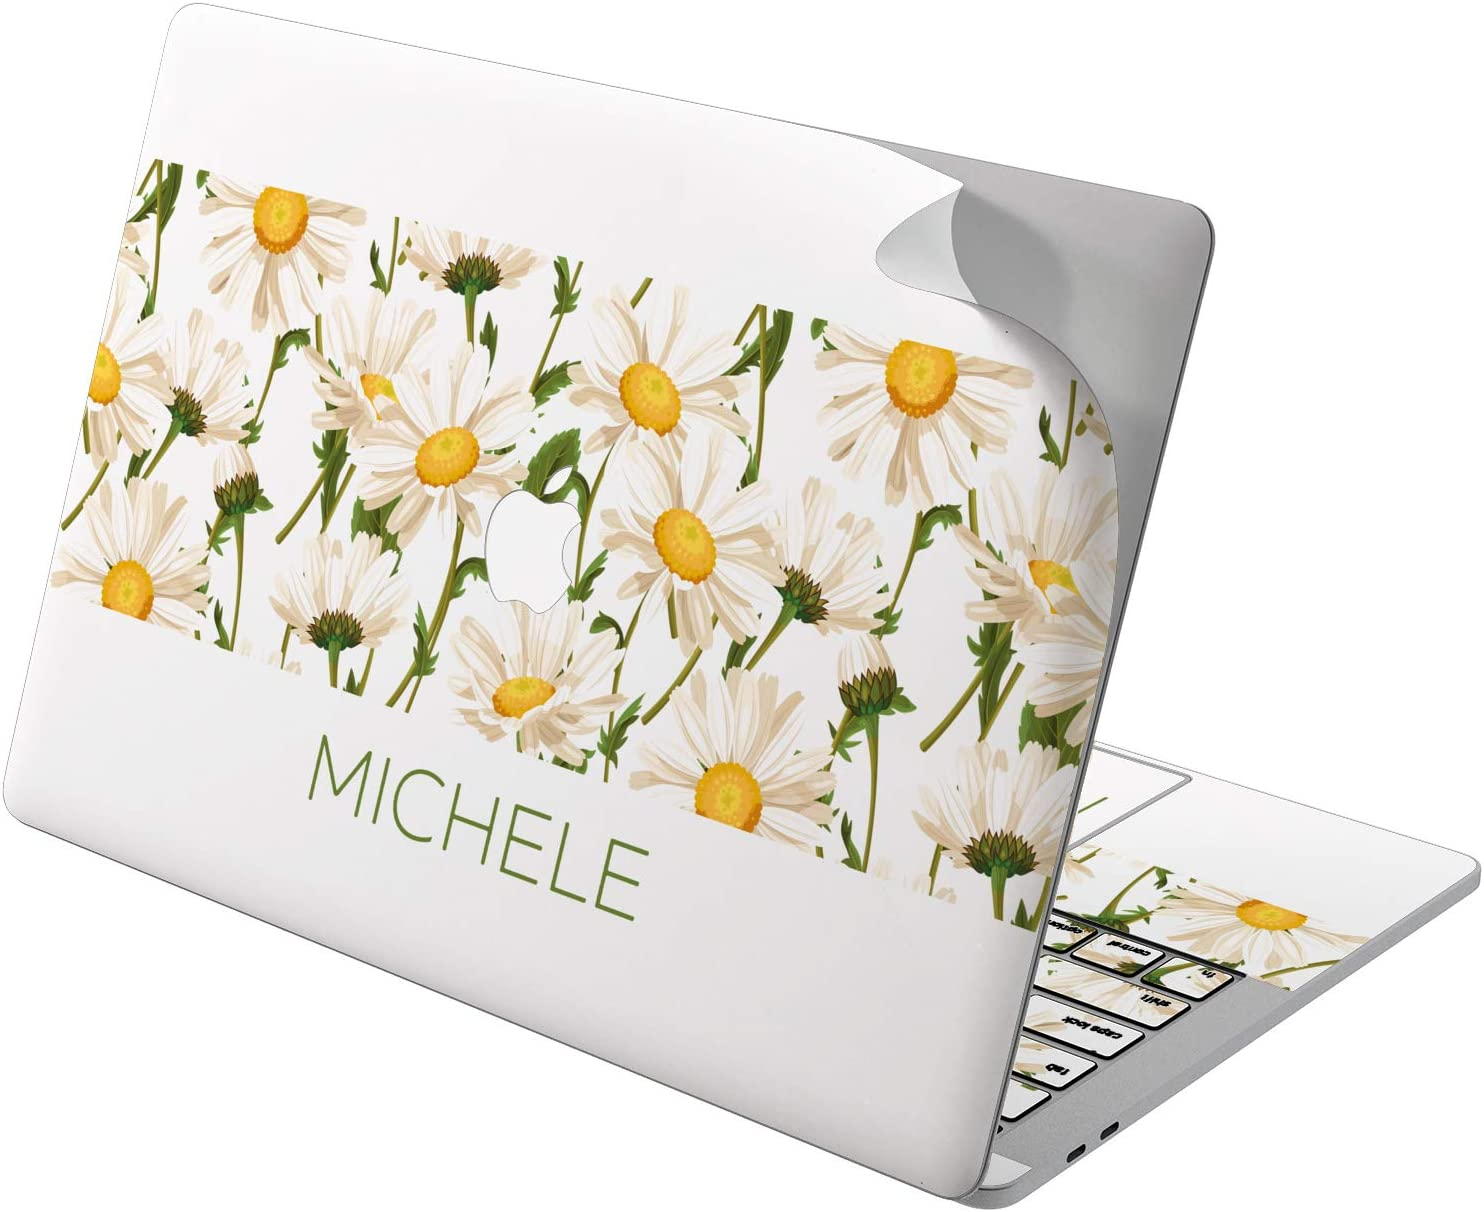 "Cavka Vinyl Decal Skin for Apple MacBook Pro 13"" 2019 15"" 2018 Air 13"" 2020 Retina 2015 Mac 11"" Mac 12"" Flowers Daisy Cute Personalized Field Sticker Name Cover Protective Design Custom Laptop Print"